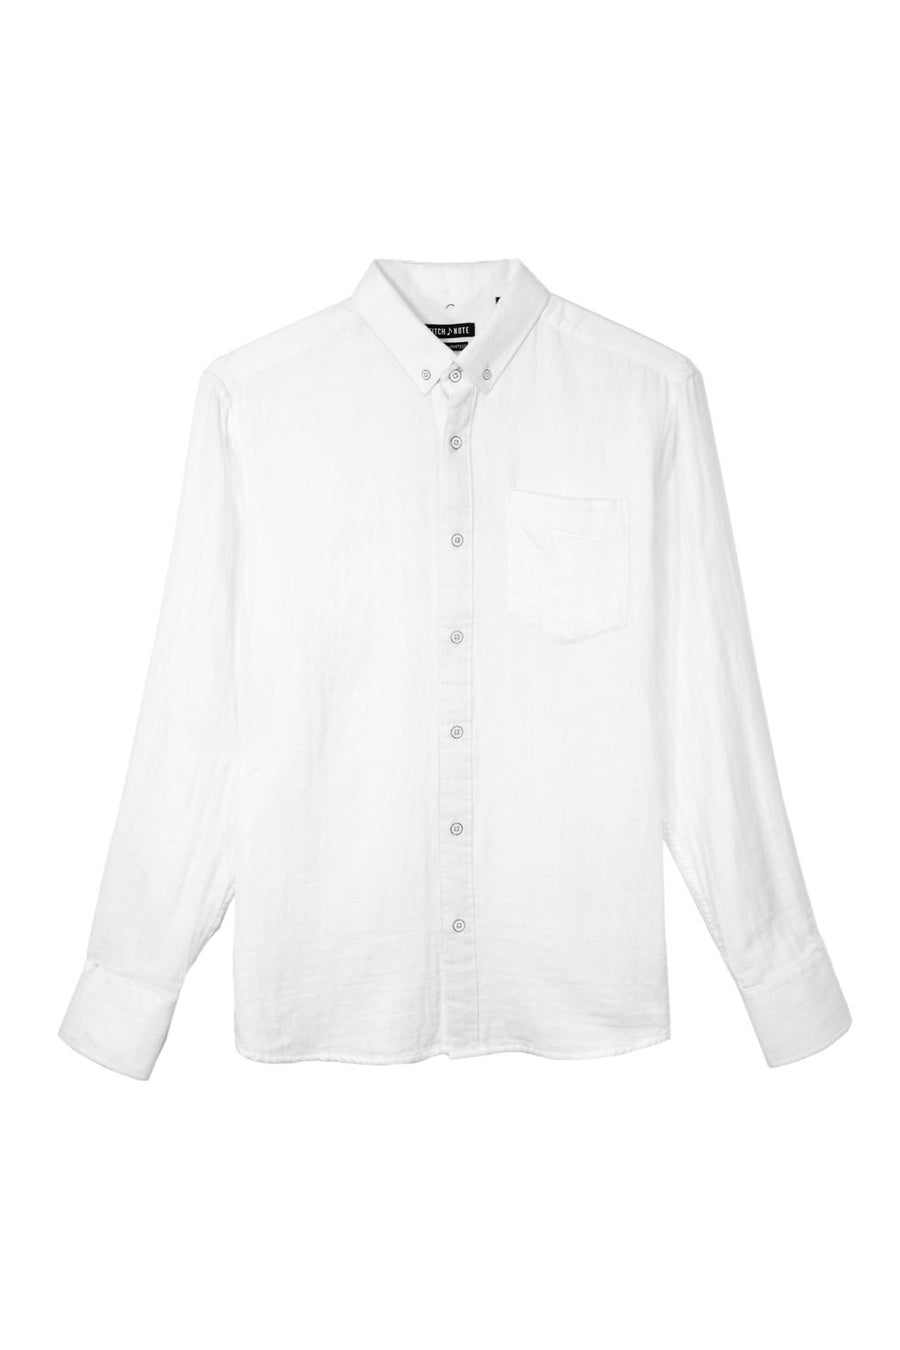 Solid Two Faced Gauze Long Sleeve Button Down - White - Pavilion